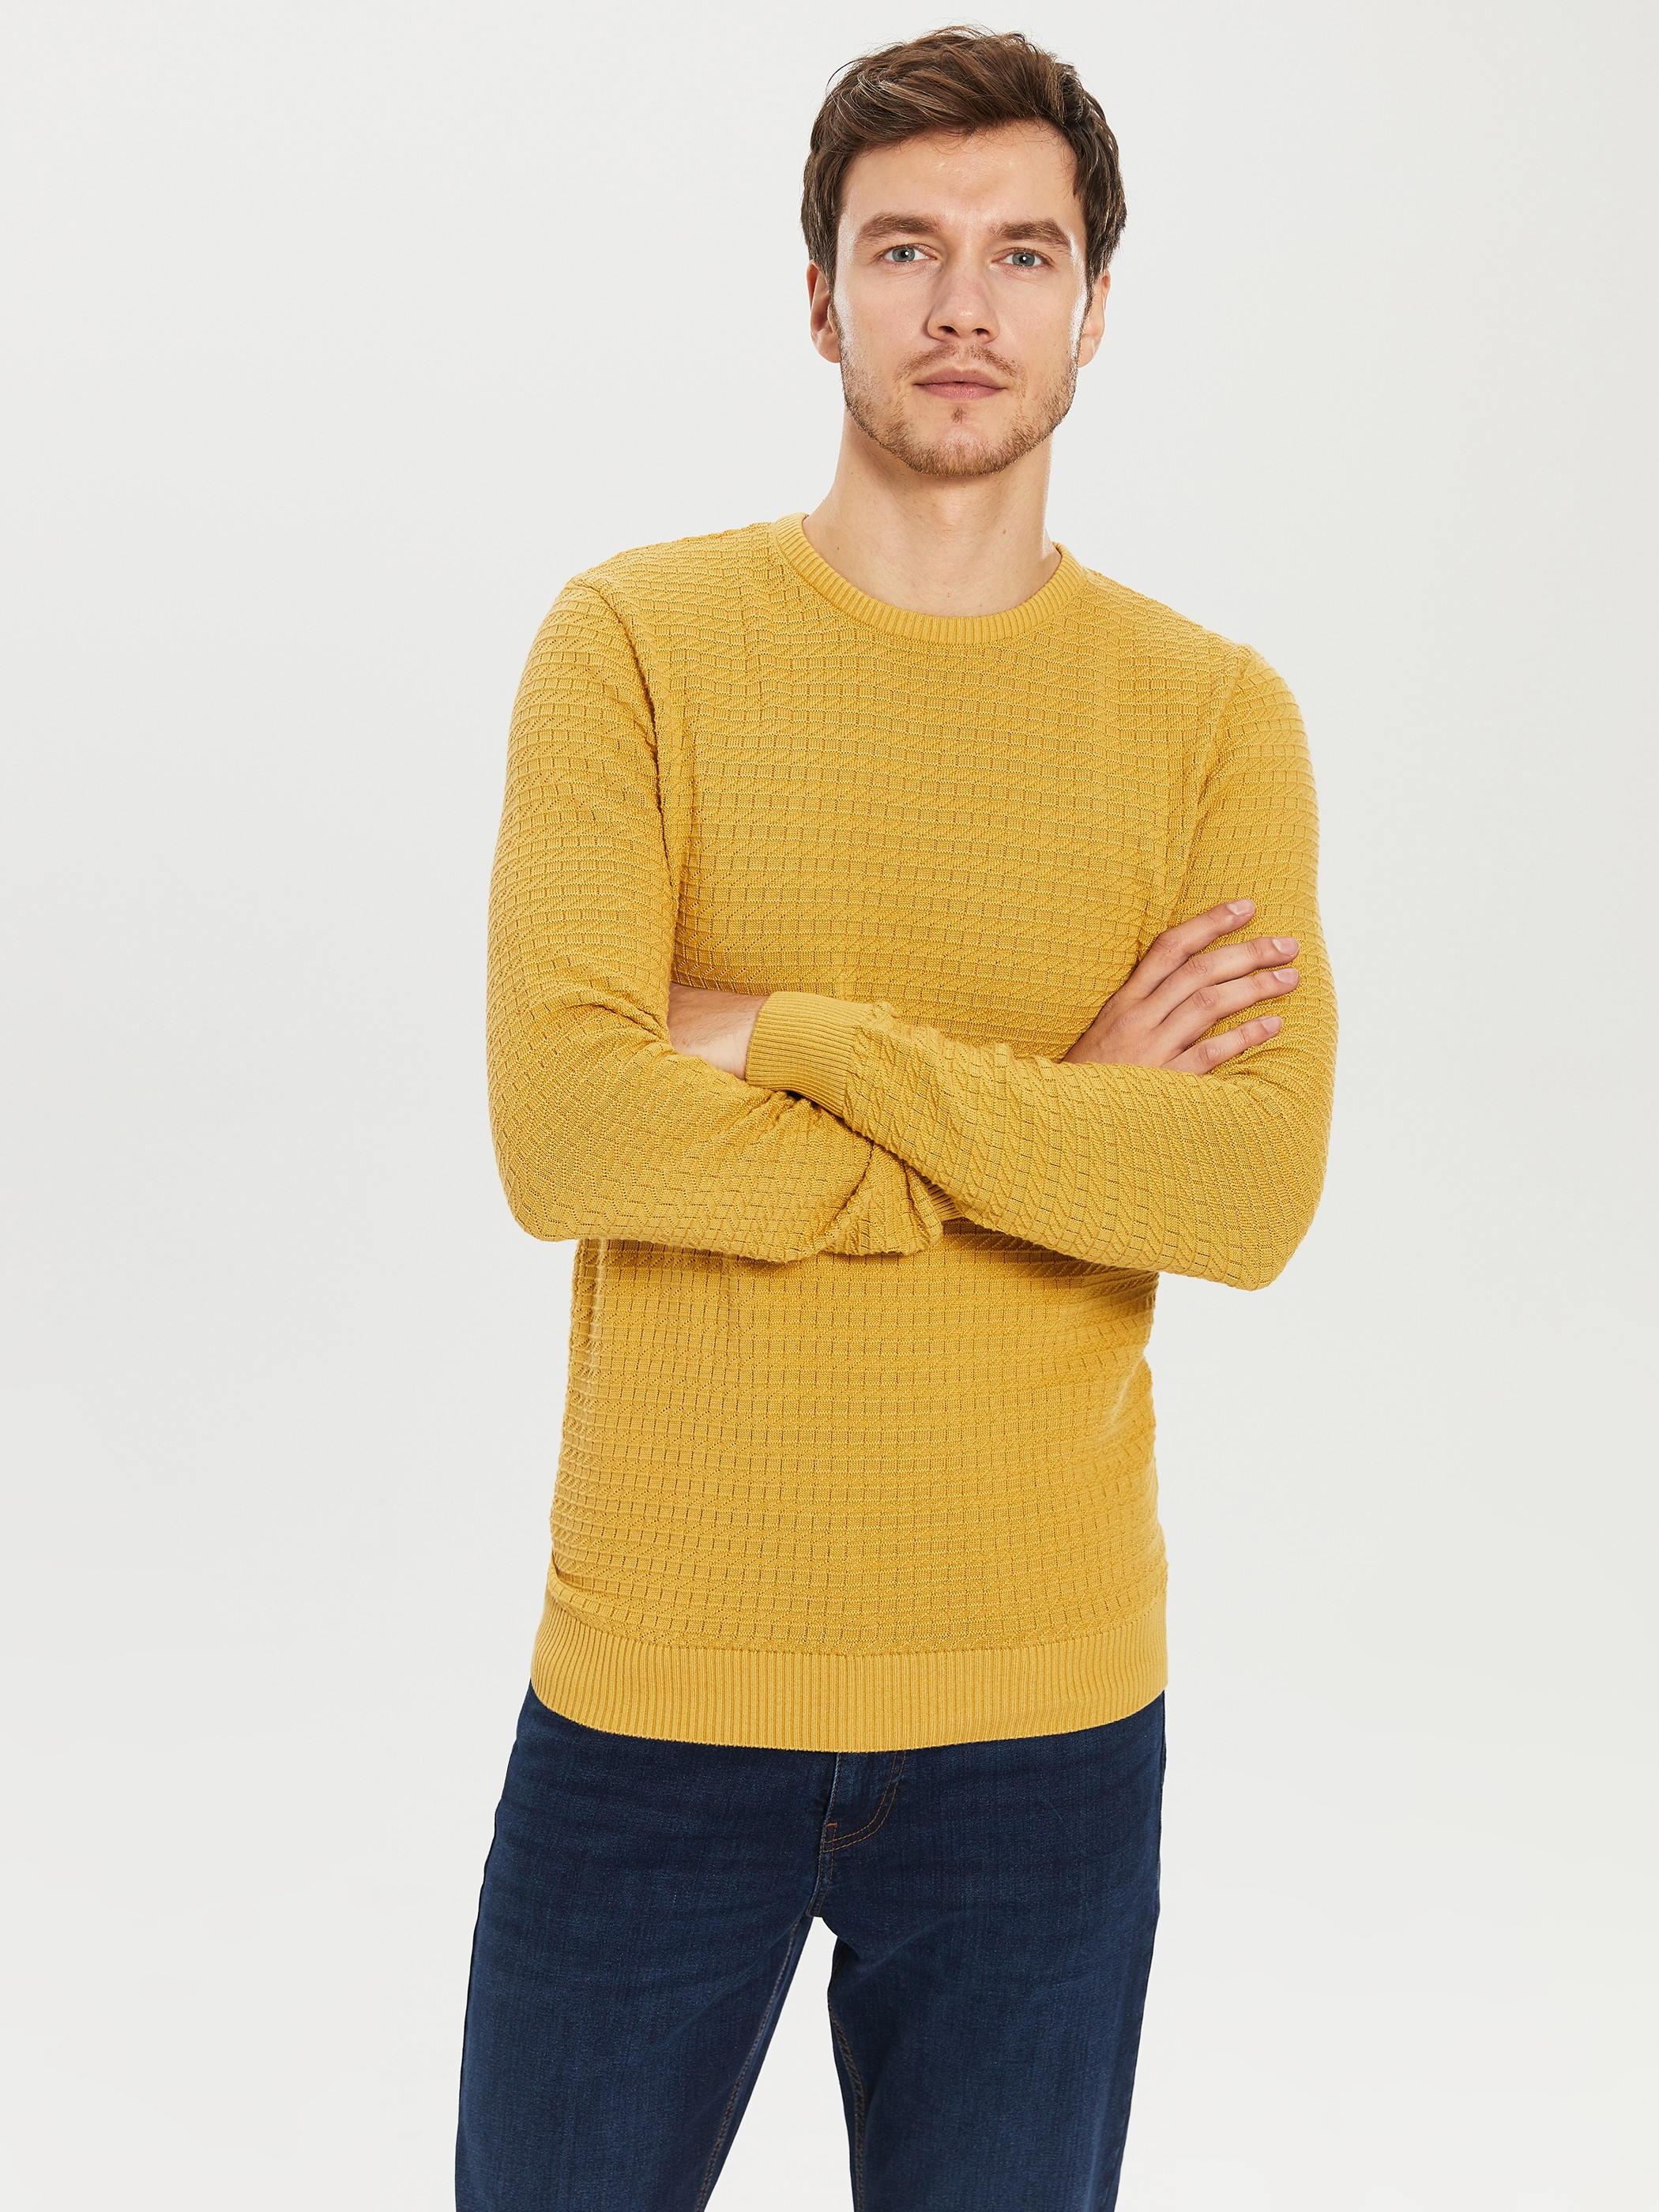 YELLOW - Crew Neck Lightweight Tricot Jumper - 0S1428Z8